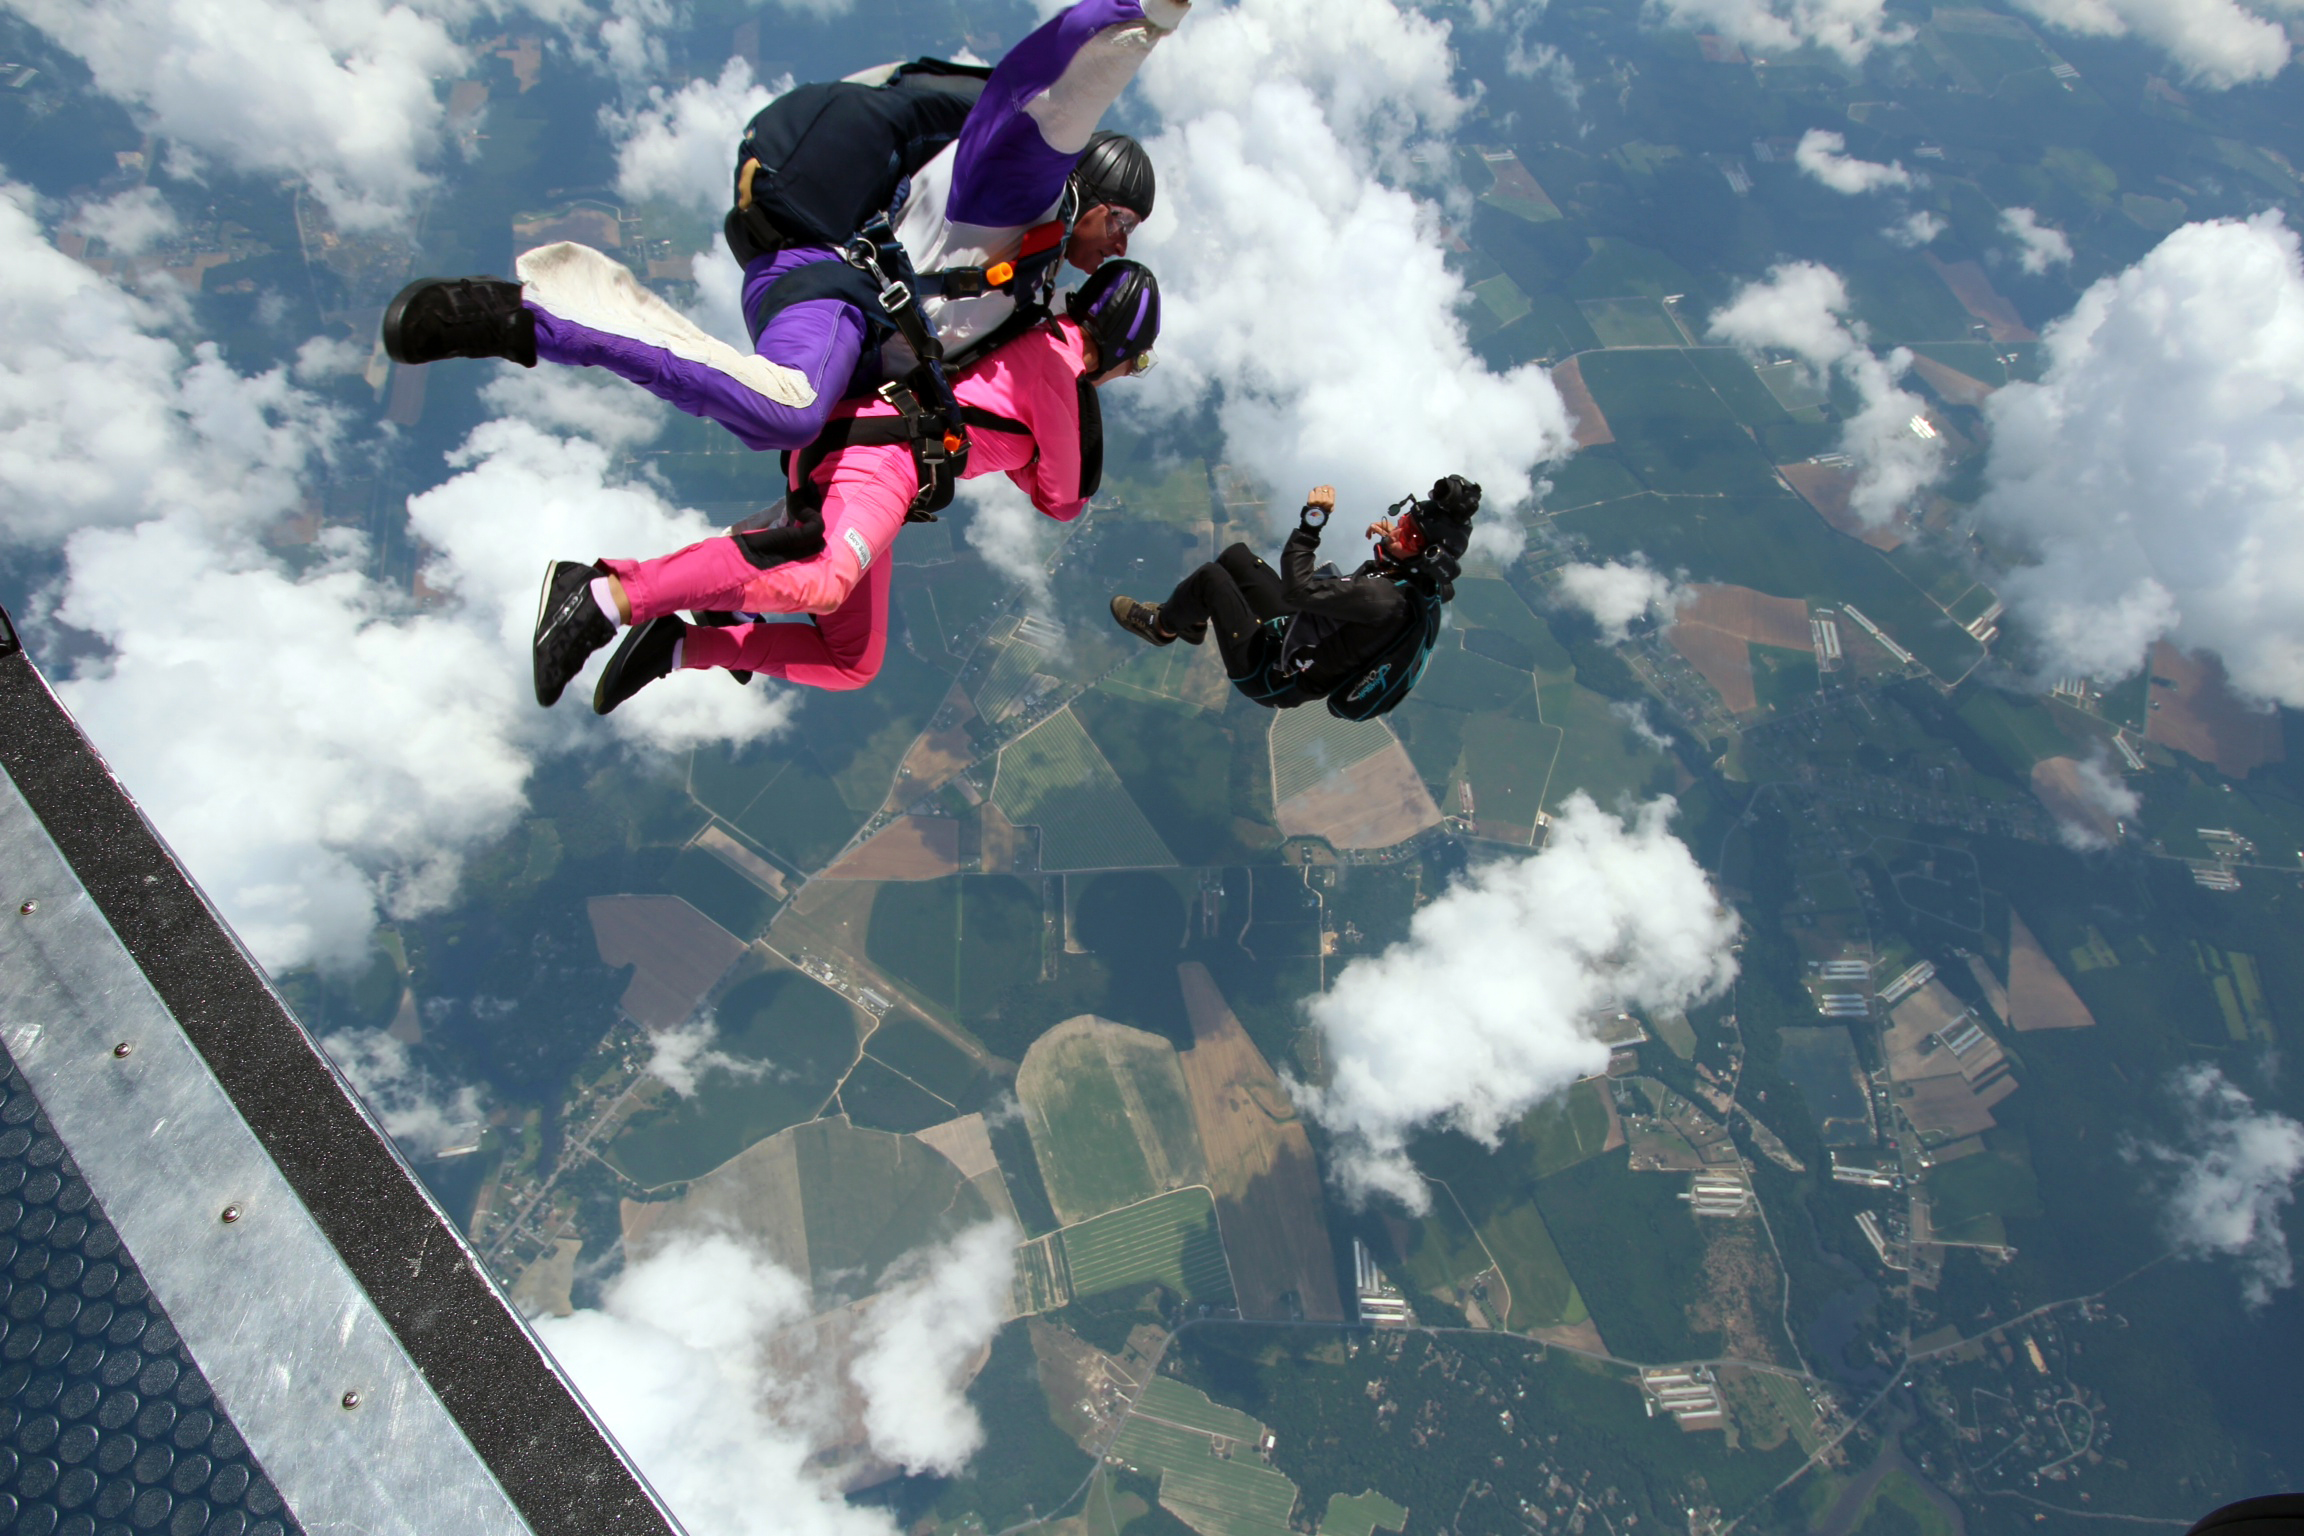 My good friend Taylor jumping out of an airplane. Inspiring, and bad ass.